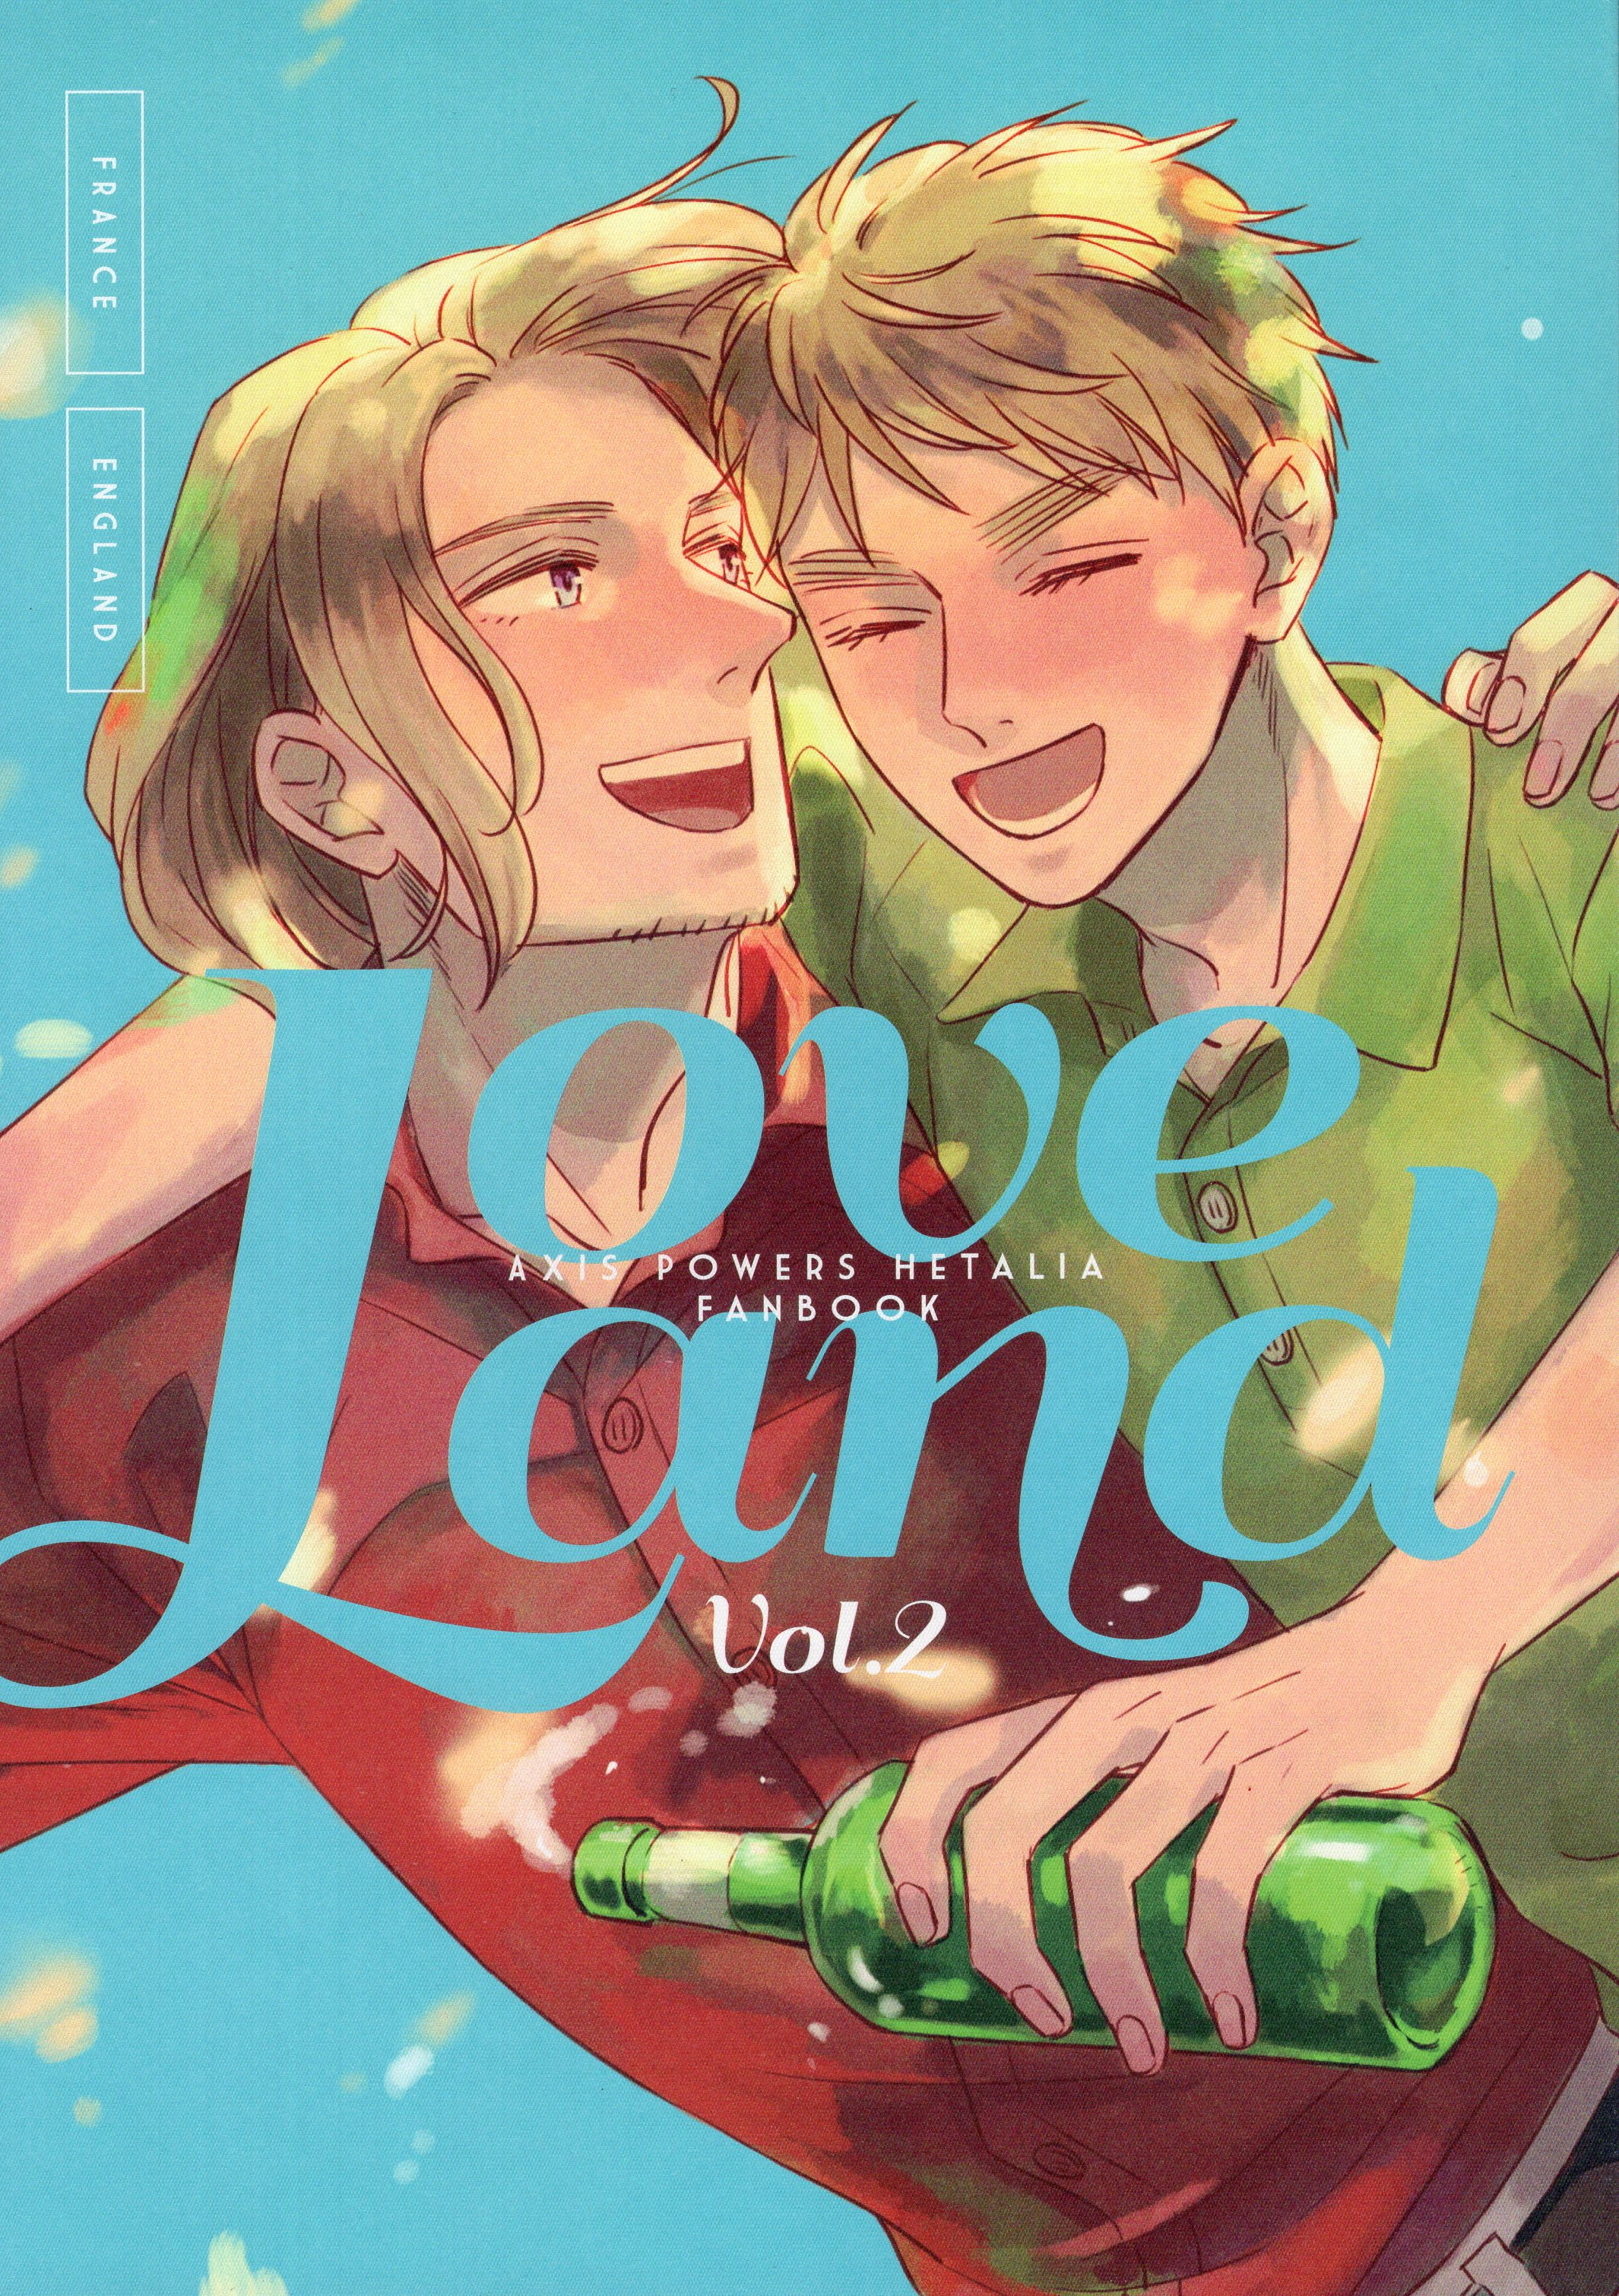 Doujinshi - Hetalia / France x United Kingdom (Love land vol.2) / Fiz